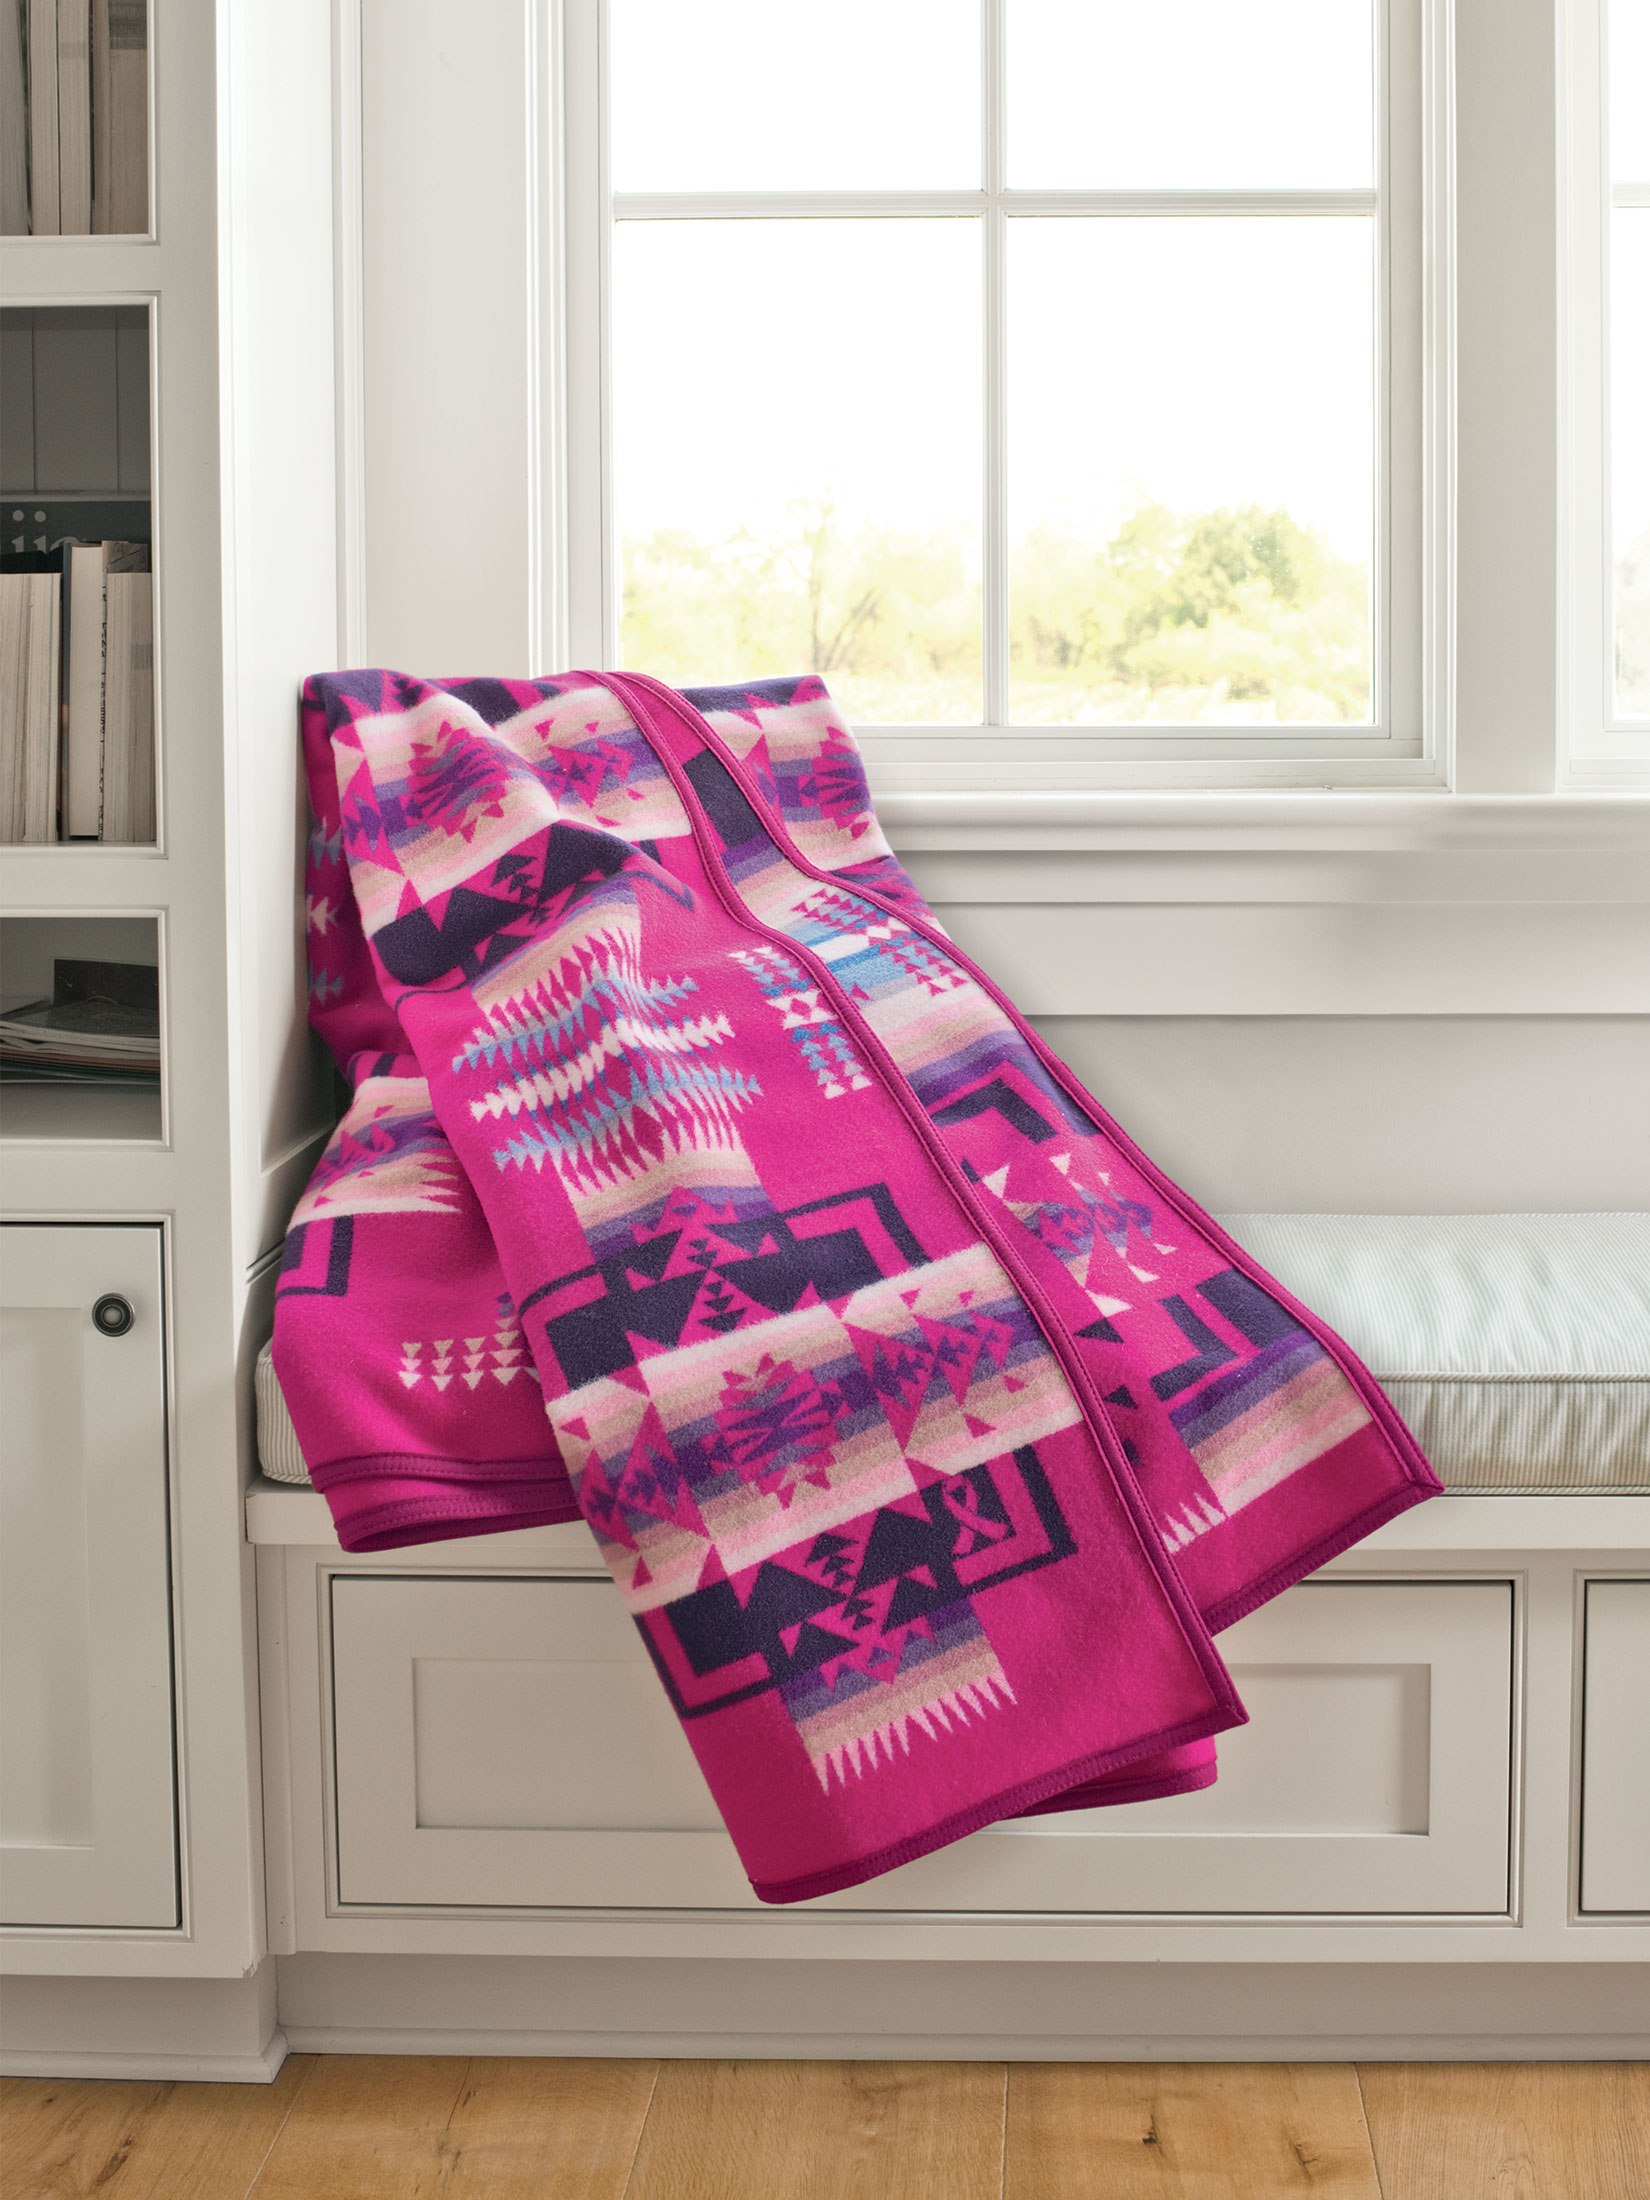 A cherry-pink Chief Joseph blanket, folded and draped on a windowseat. This special blanket benefits the Native American women's clinic at NARA.